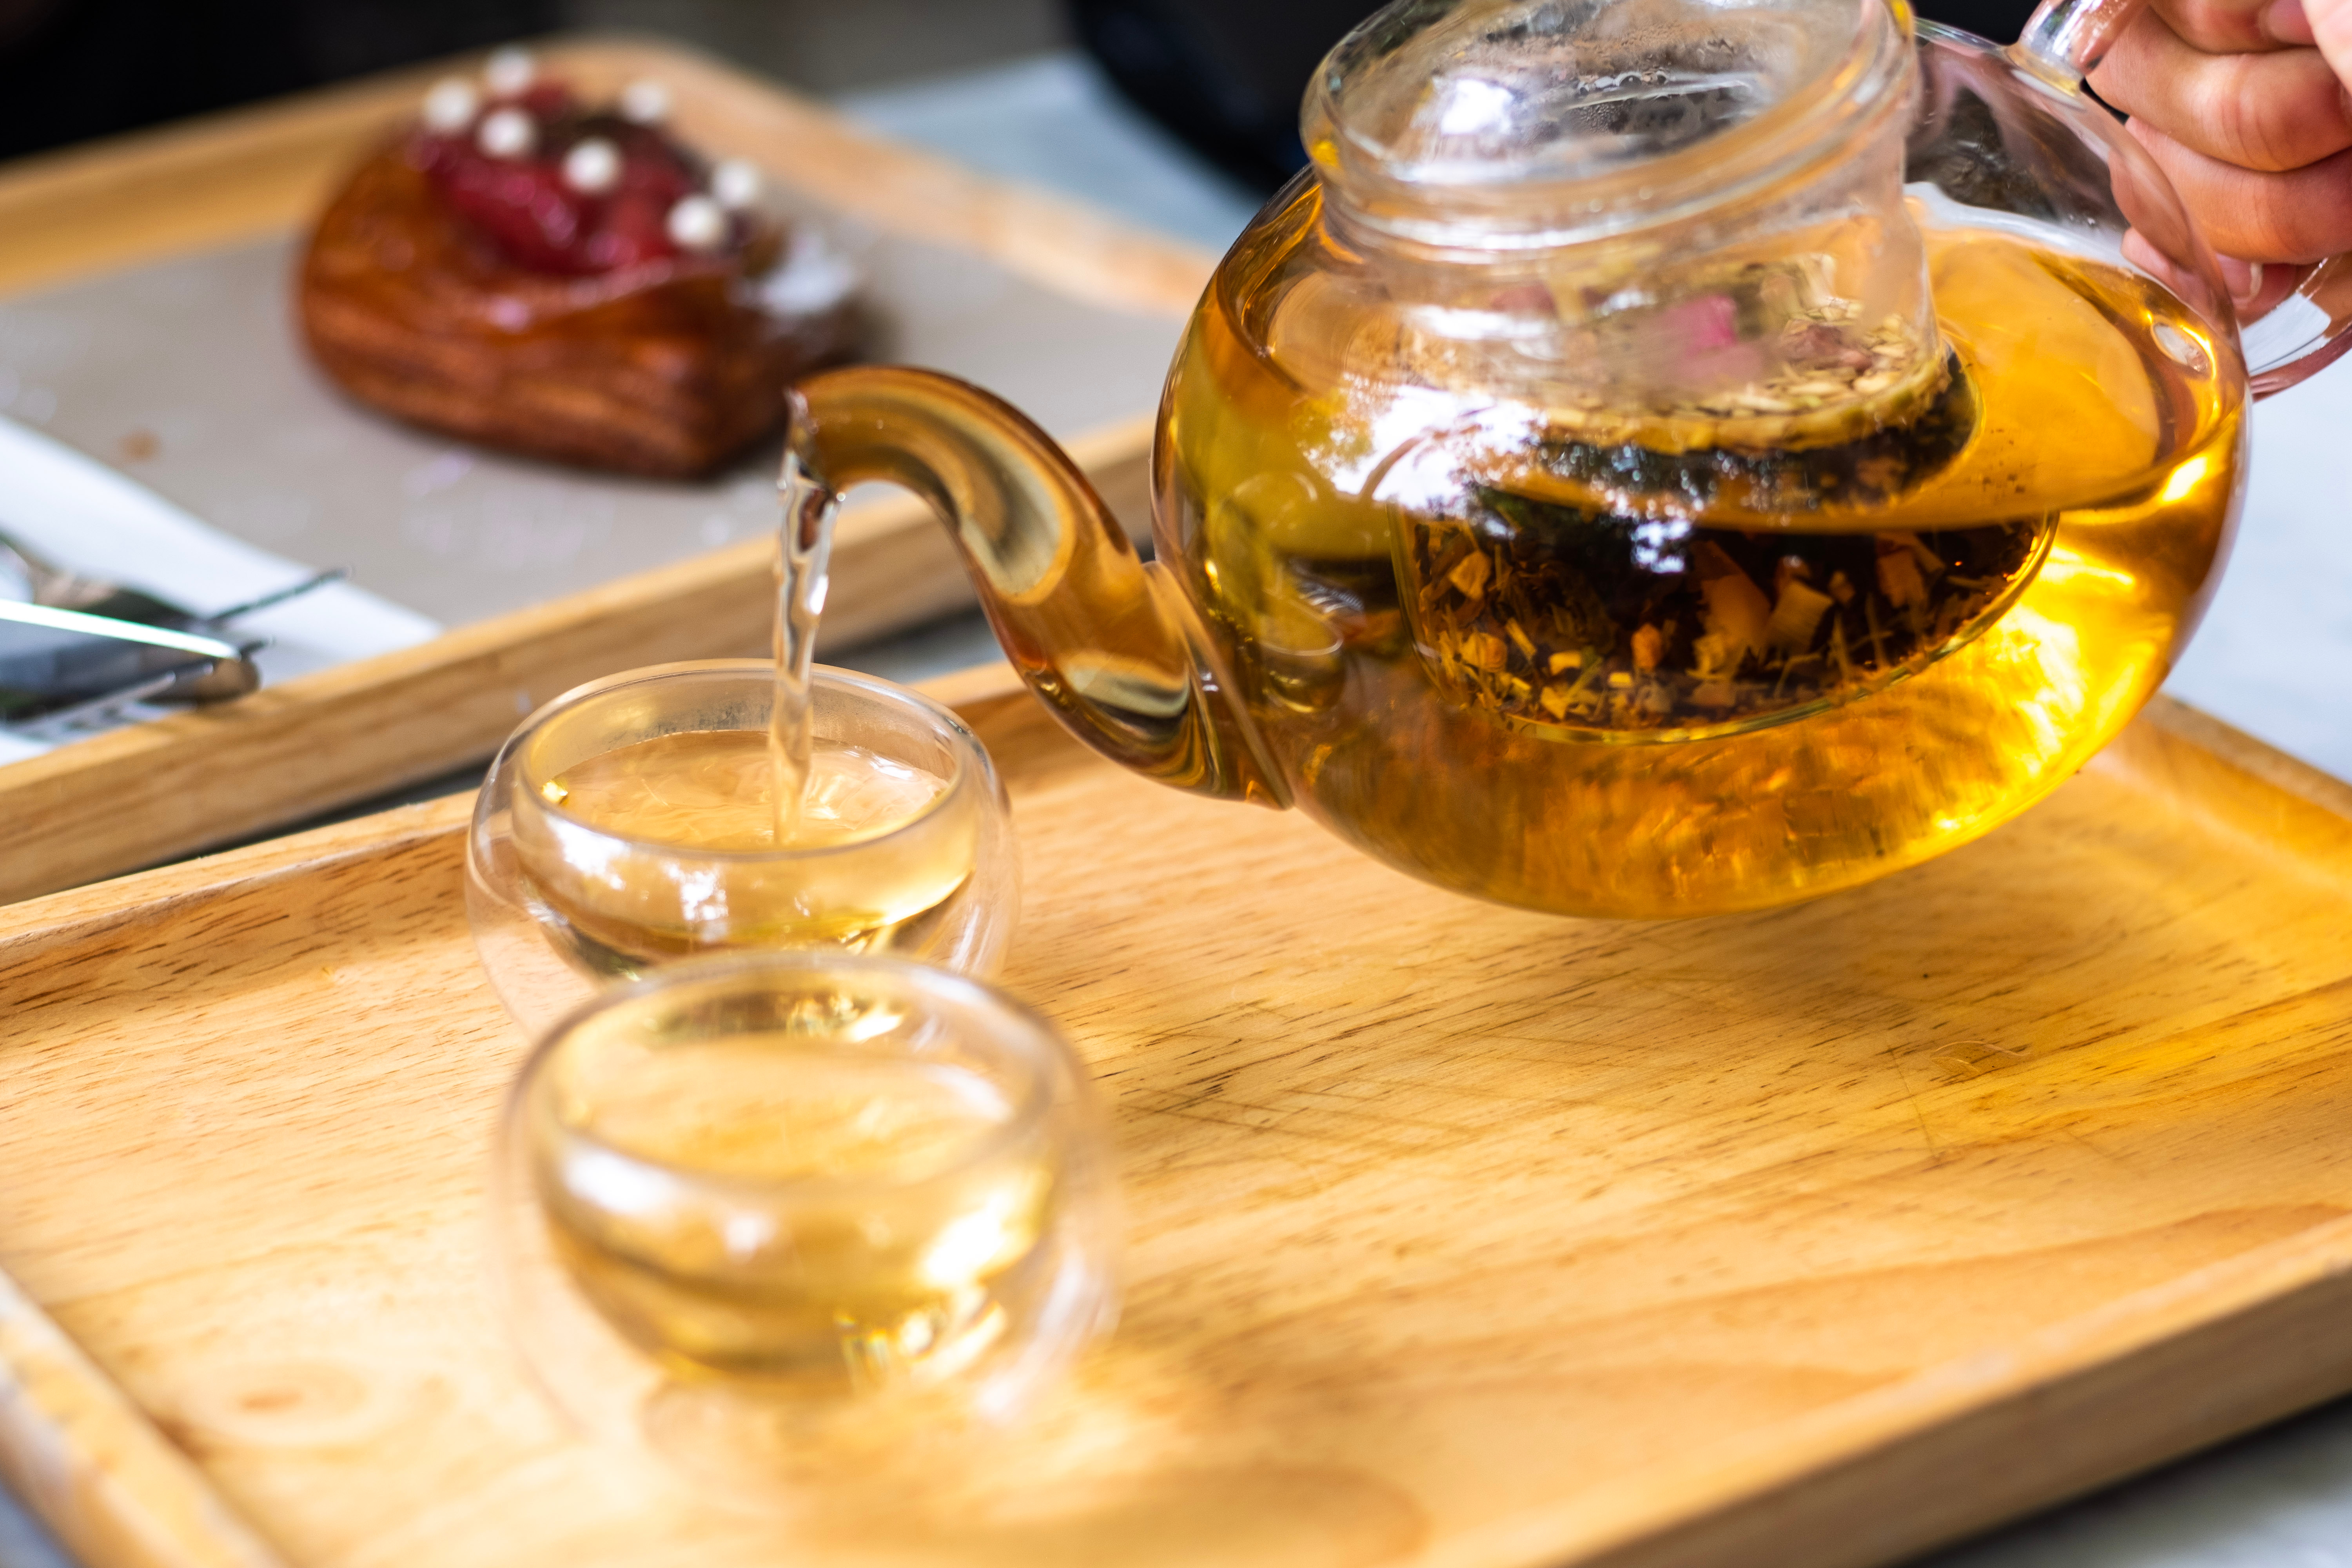 A clear glass teapot with loose tea in a strainer pours tea into two clear glass cups on a wooden tray.